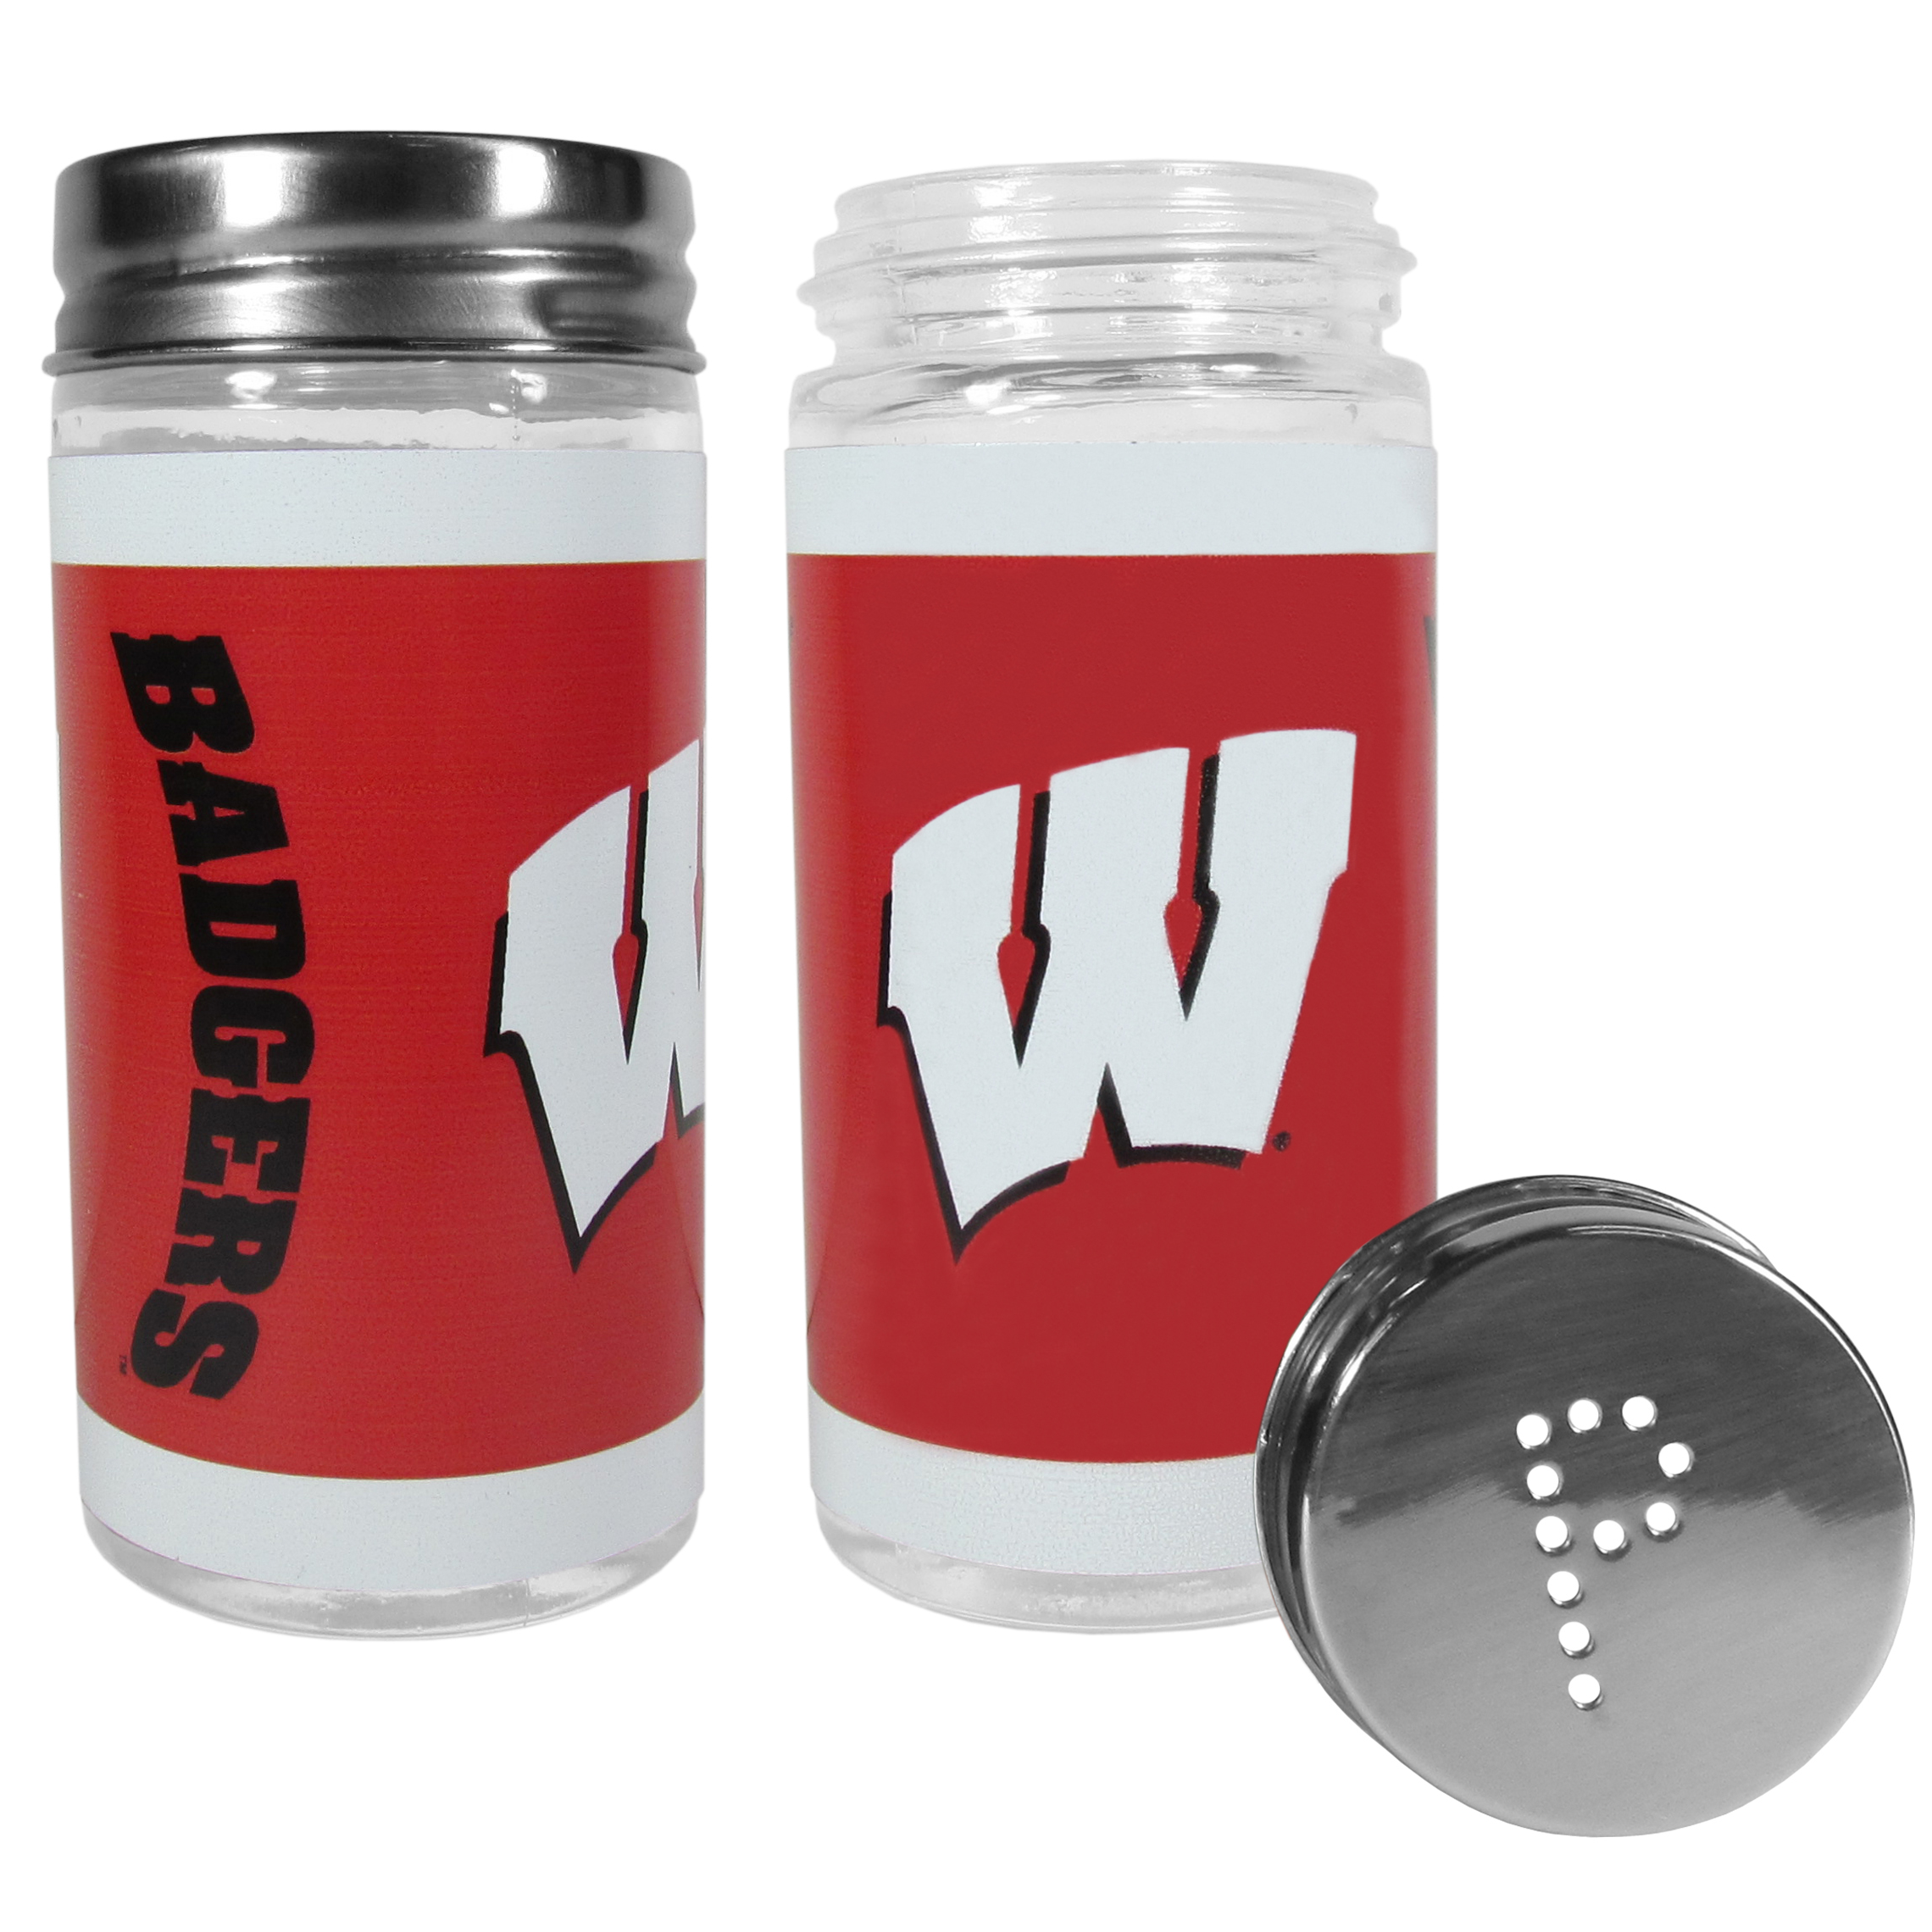 Wisconsin Badgers Tailgater Salt and Pepper Shakers - No tailgate party is complete without your Wisconsin Badgers salt & pepper shakers featuring bright team graphics. The glass shakers are 3.75 inches tall and the screw top lids have holes that spell out P and S. These team shakers are a great grill accessory whether you are barbecuing on the patio, picnicing or having a game day party.